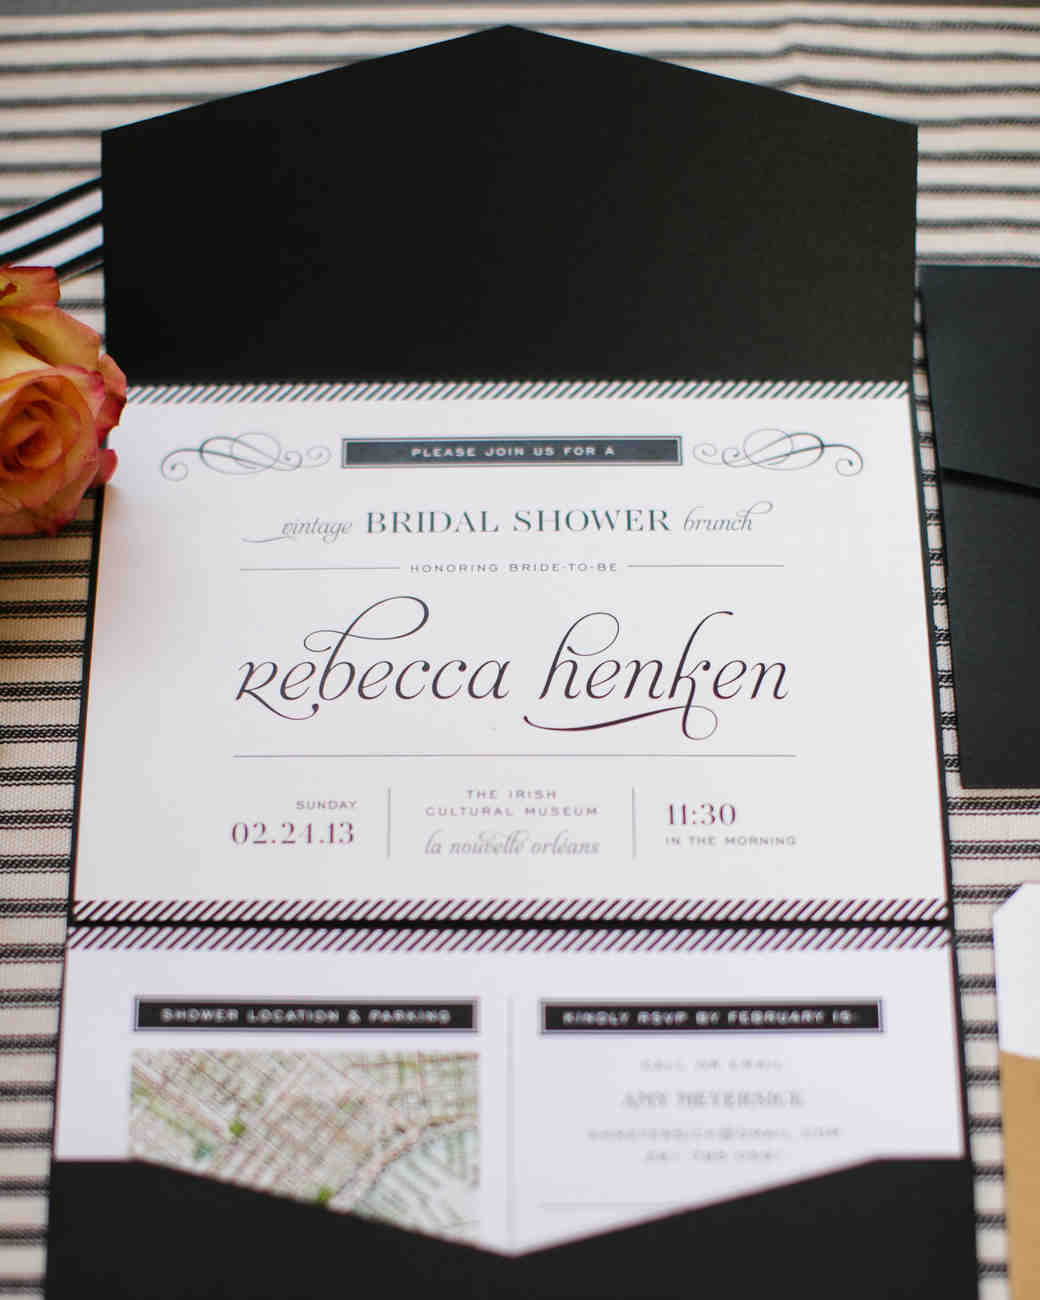 Bridal shower invitation wording made simple martha stewart weddings filmwisefo